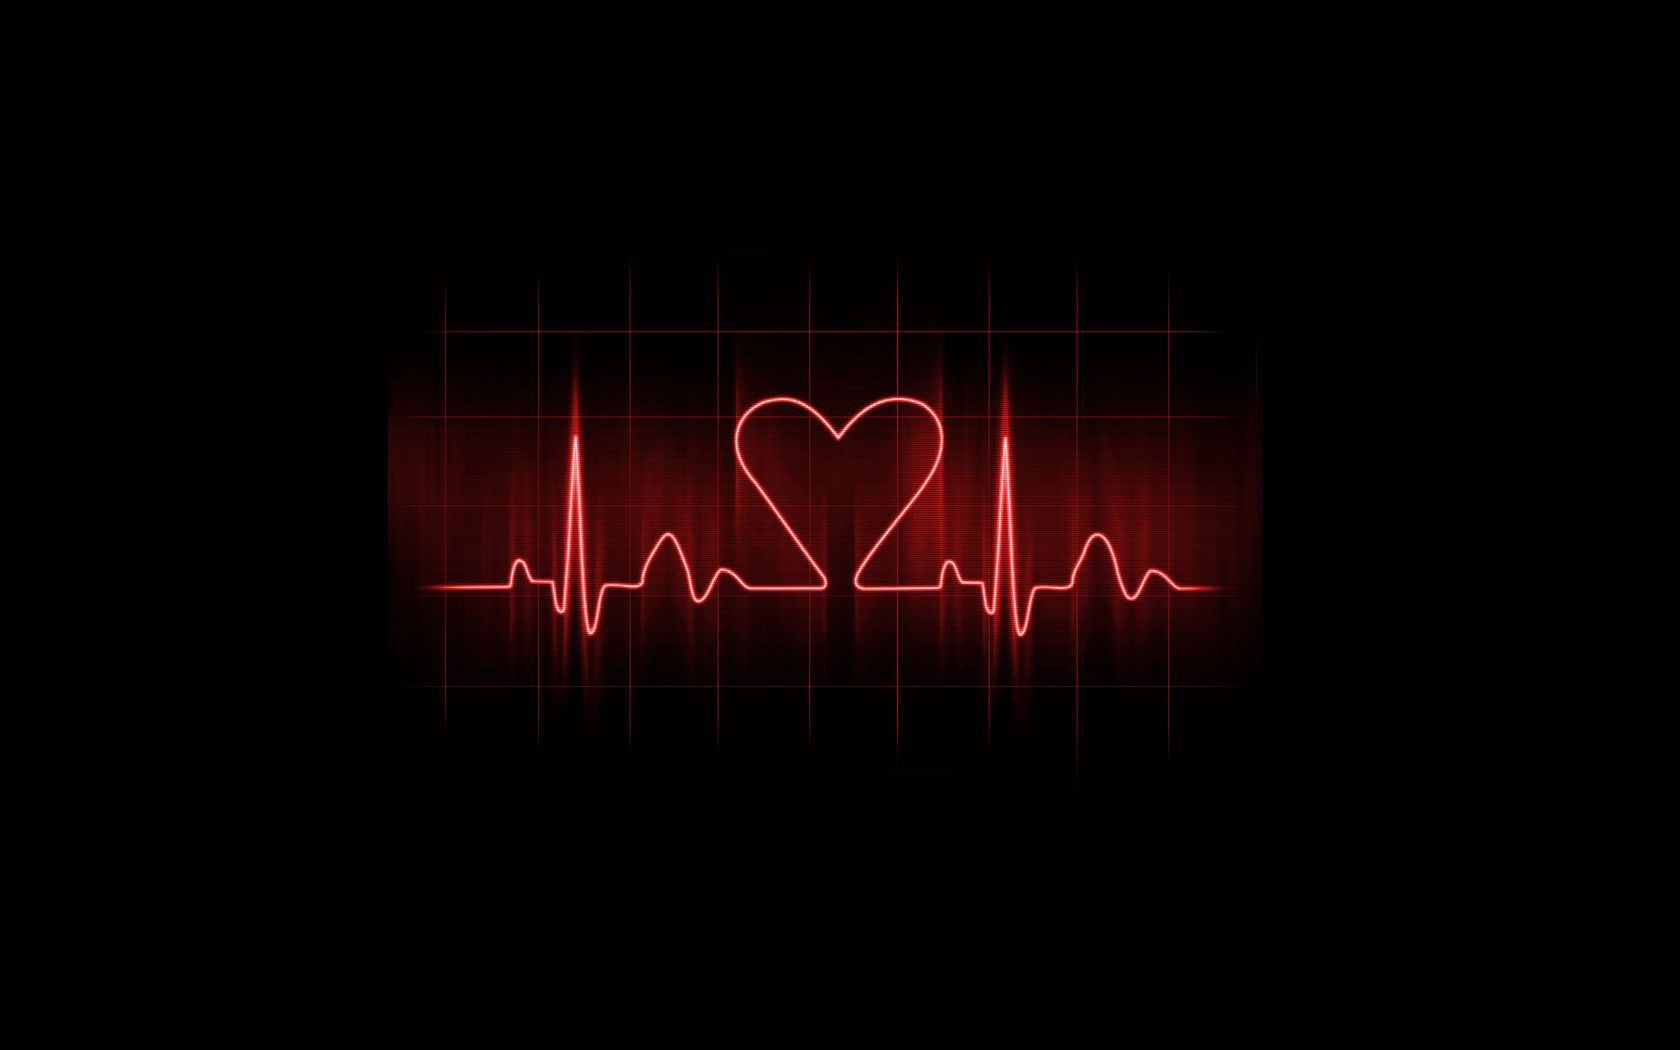 Beating Heart Wallpapers Top Free Beating Heart Backgrounds Wallpaperaccess